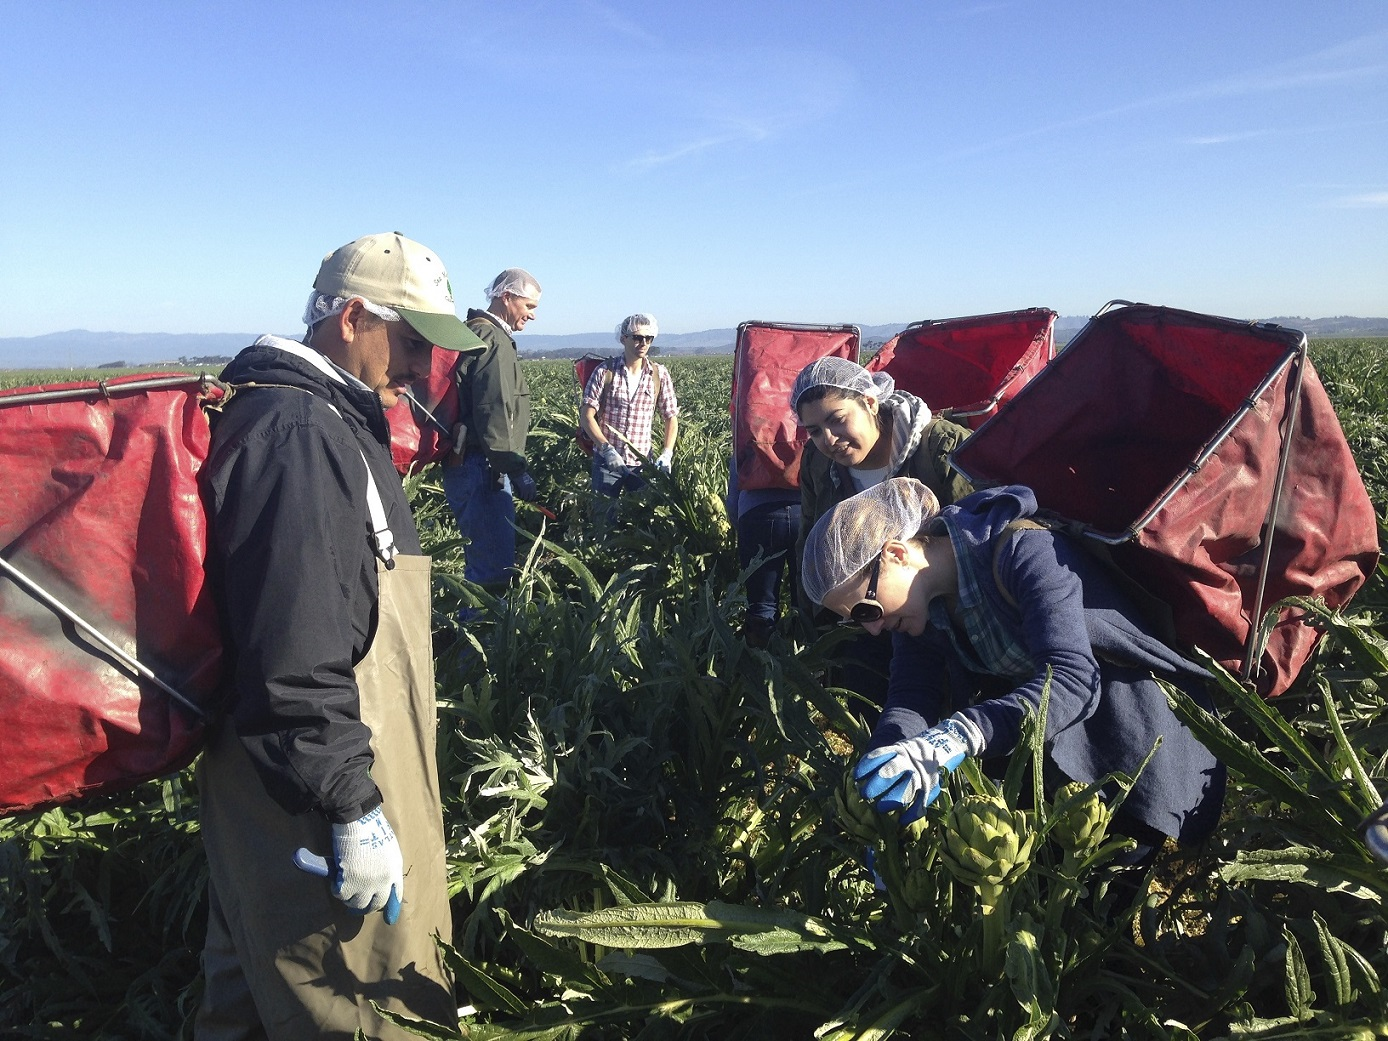 Team from Maude trying hand at harvesting Ocean Mist Farms Heirloom Artichokes in Castroville